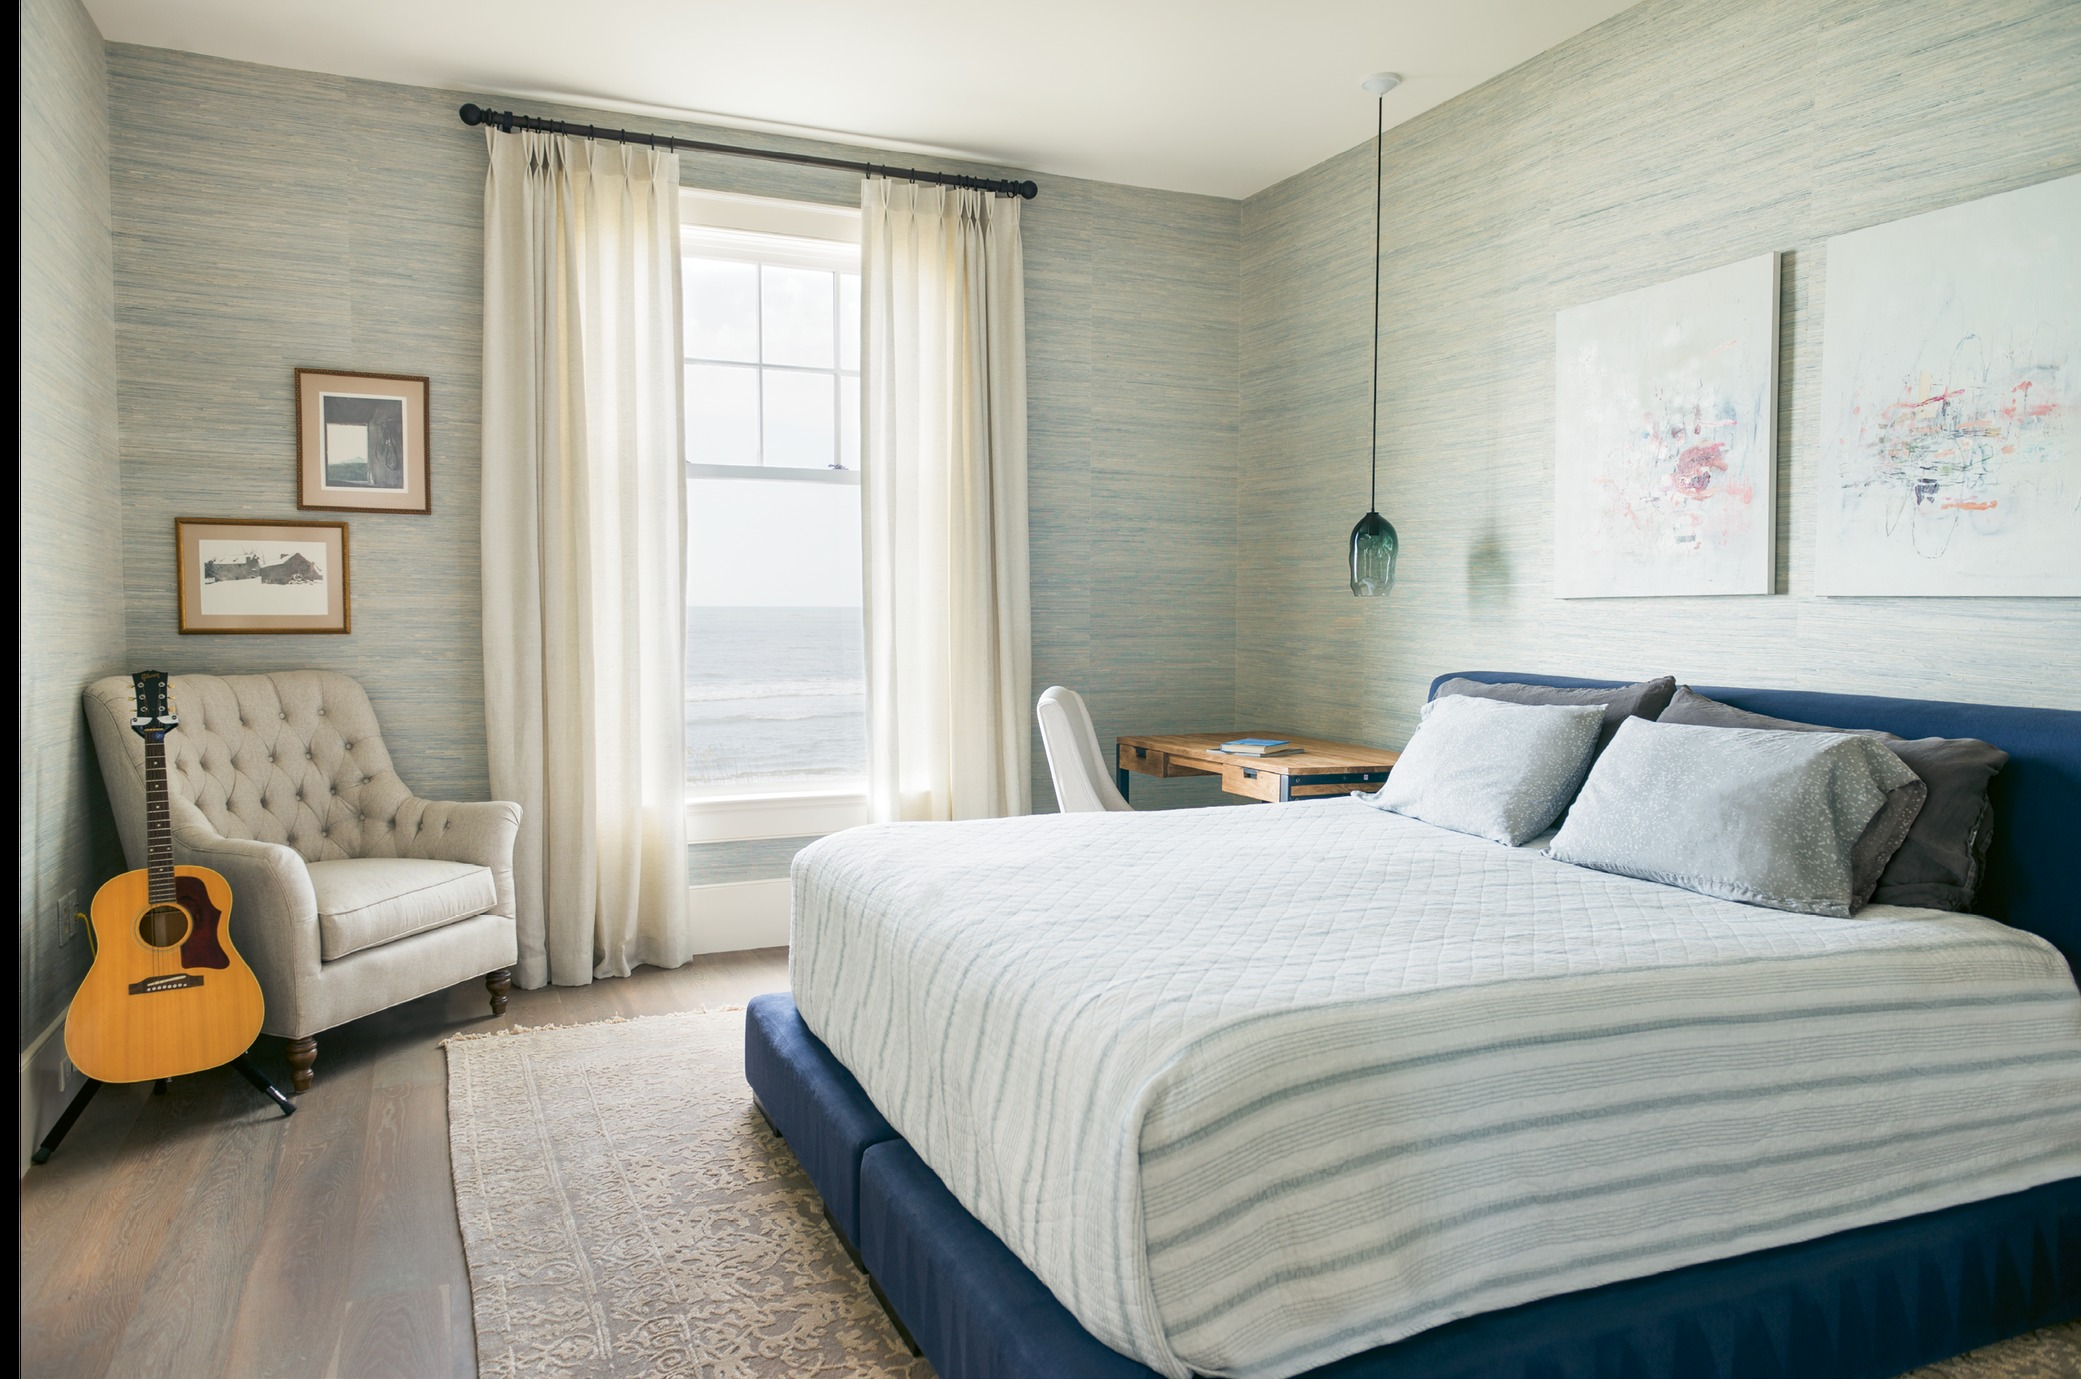 In the master bedroom, modern touches, such as paintings by Tim Hussey, commingle with traditional pieces, like a tufted club chair.